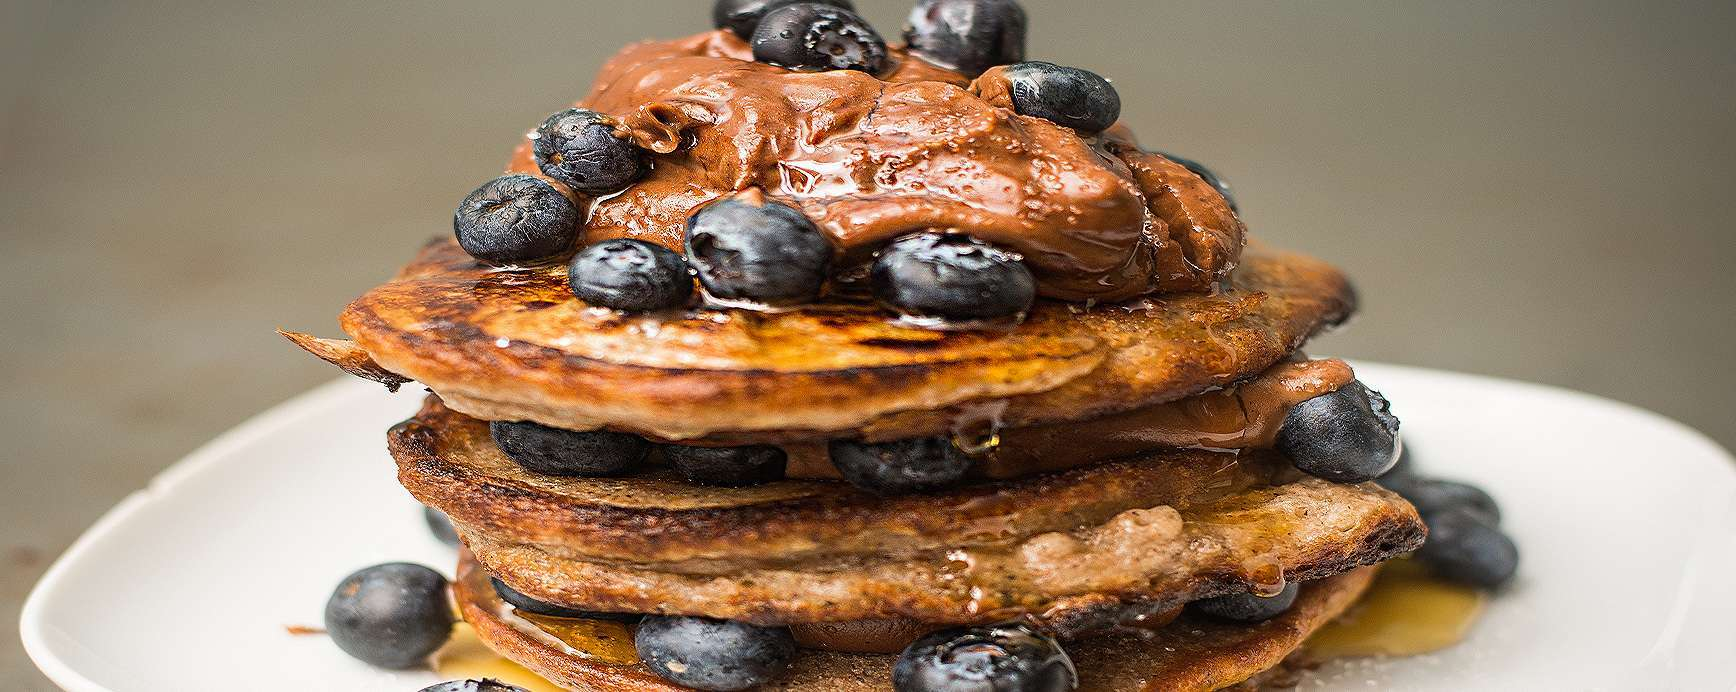 Delicious stack of pancakes with blueberries and a topping of chocolate